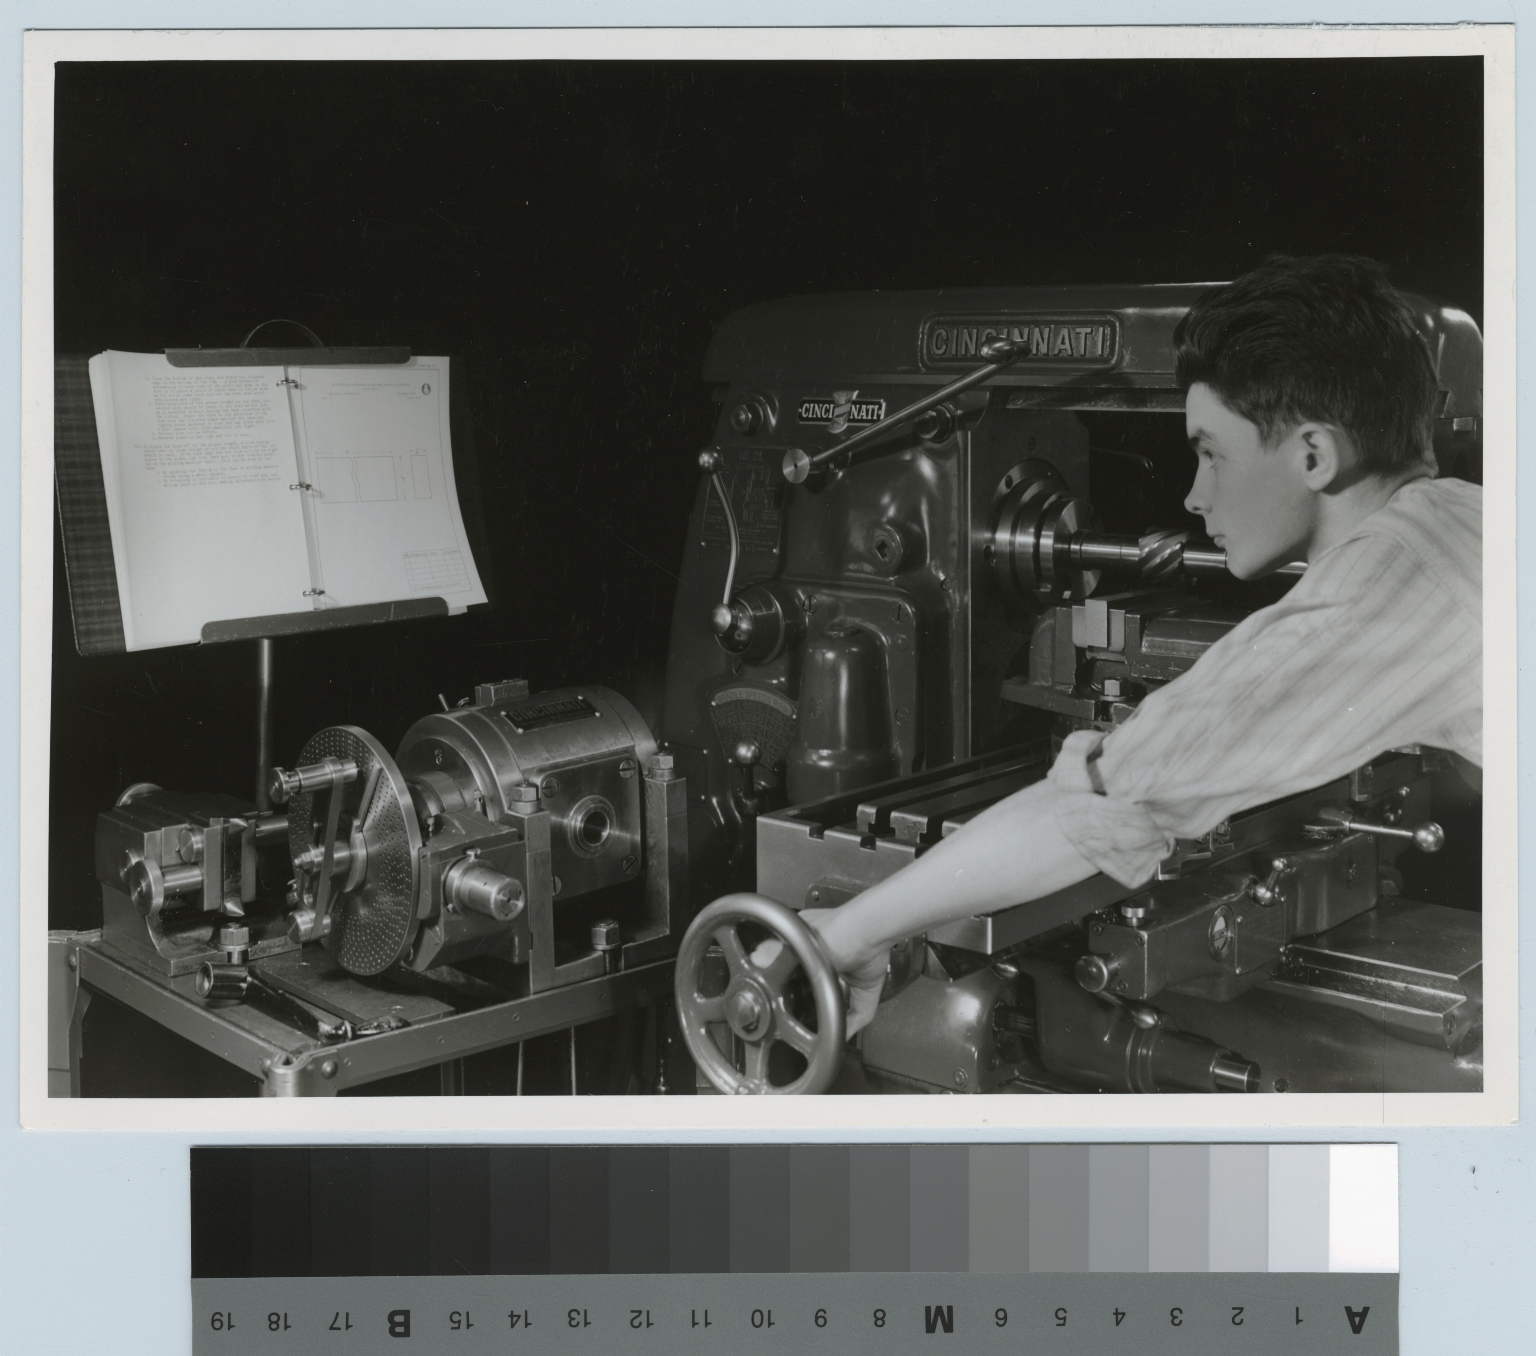 Unidentified student operating machinery, Mechanical Department, Rochester Institute of Technology